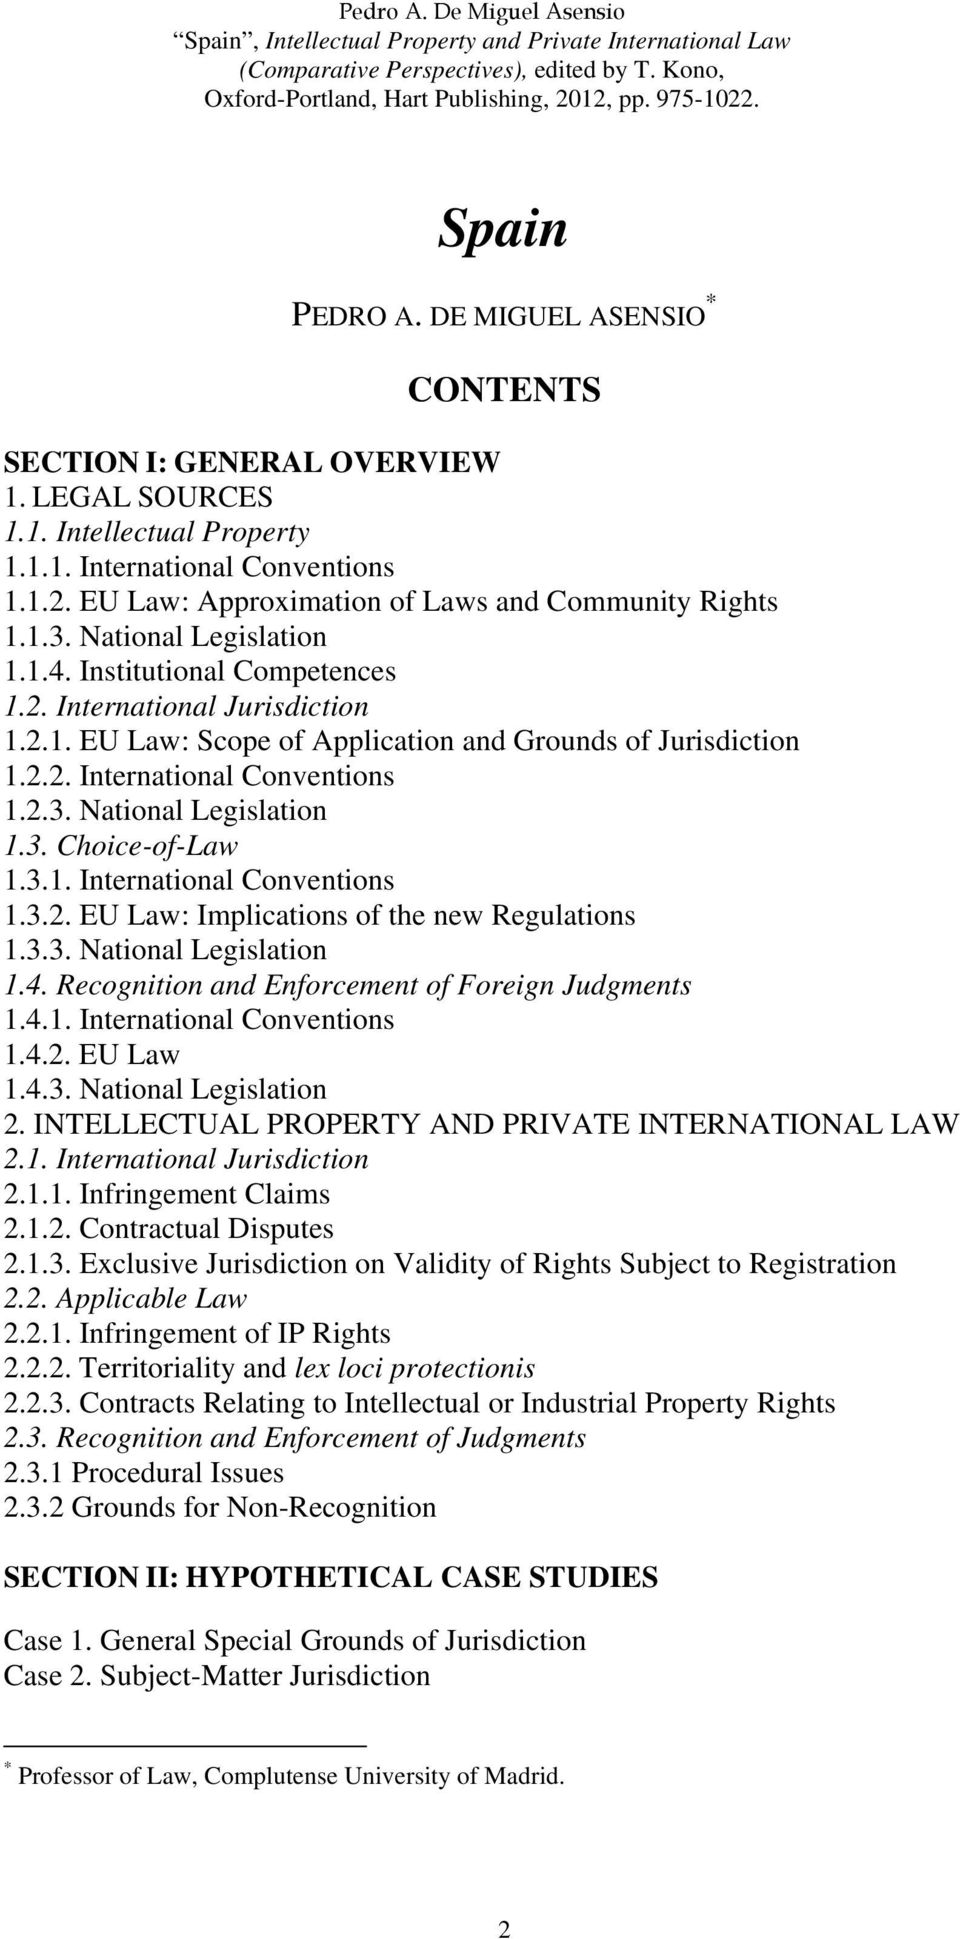 2.2. International Conventions 1.2.3. National Legislation 1.3. Choice-of-Law 1.3.1. International Conventions 1.3.2. EU Law: Implications of the new Regulations 1.3.3. National Legislation 1.4.